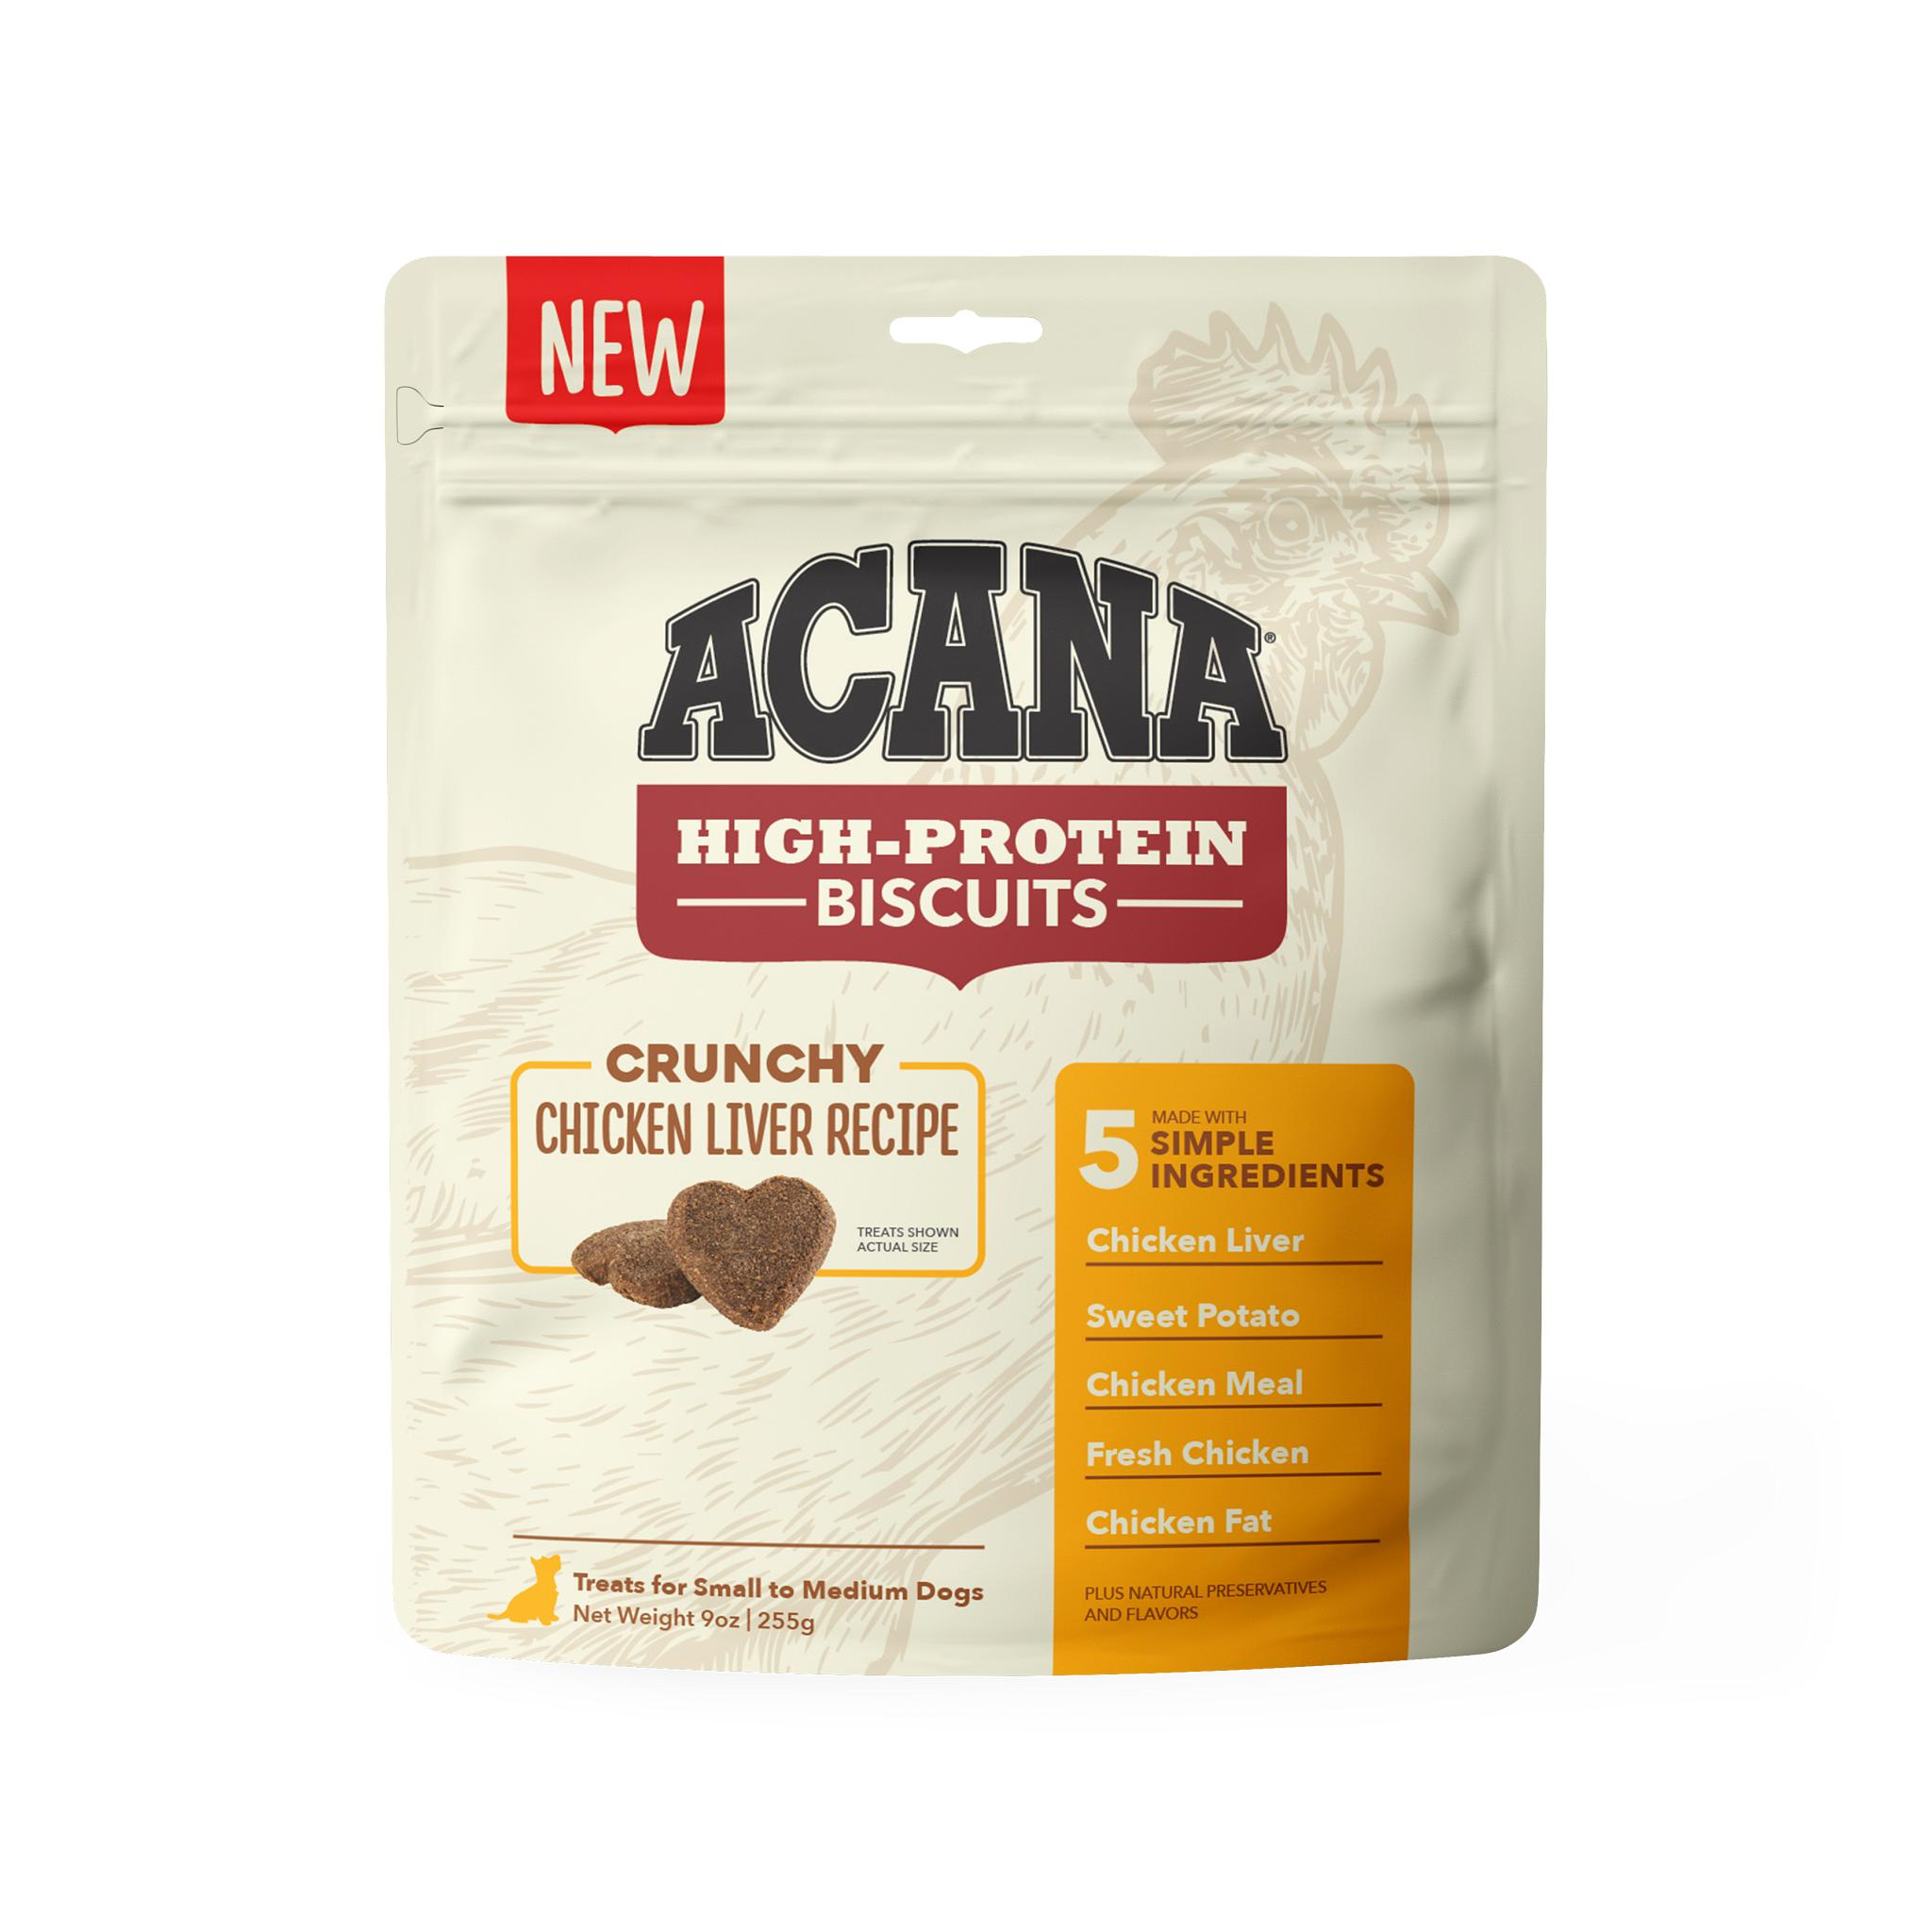 ACANA Crunchy Biscuits Chicken Liver Recipe Dog Treats, Small